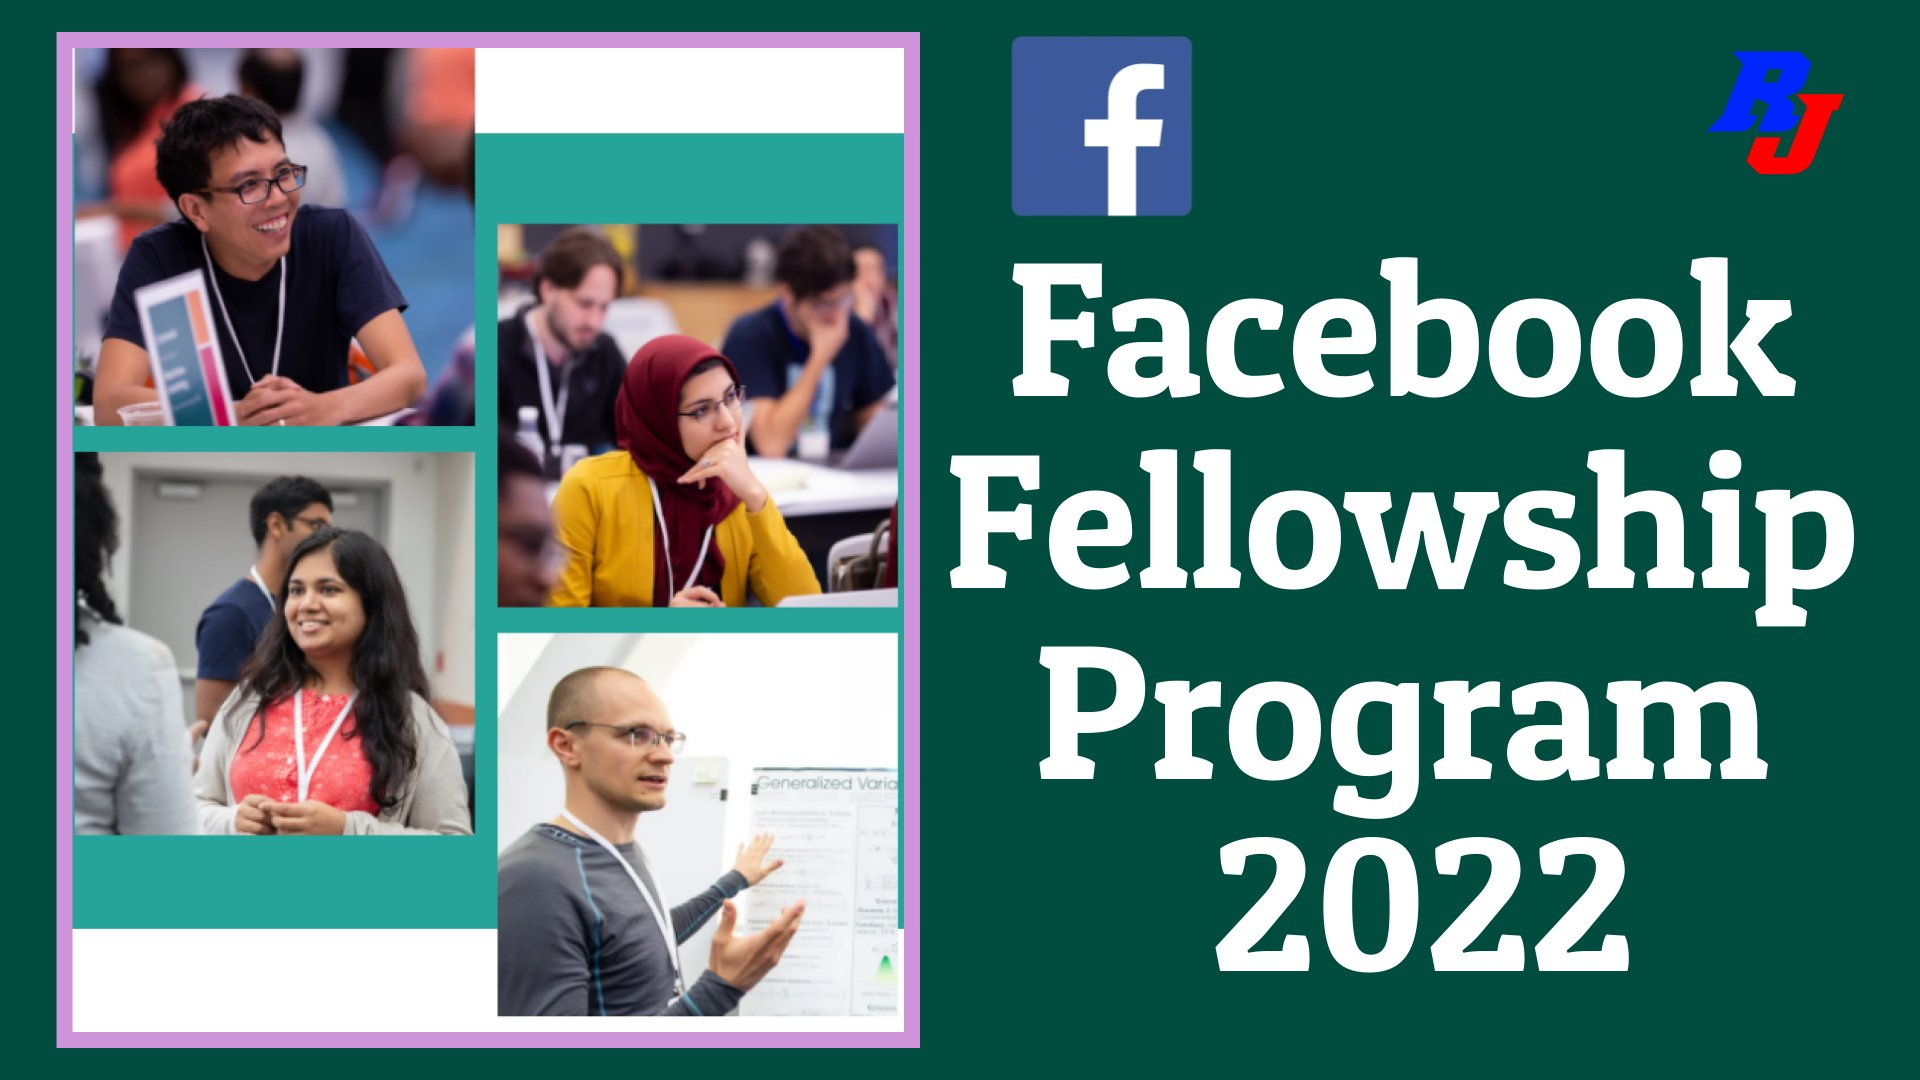 Facebook Fellowship Program for Ph.D. Students in Innovative Research